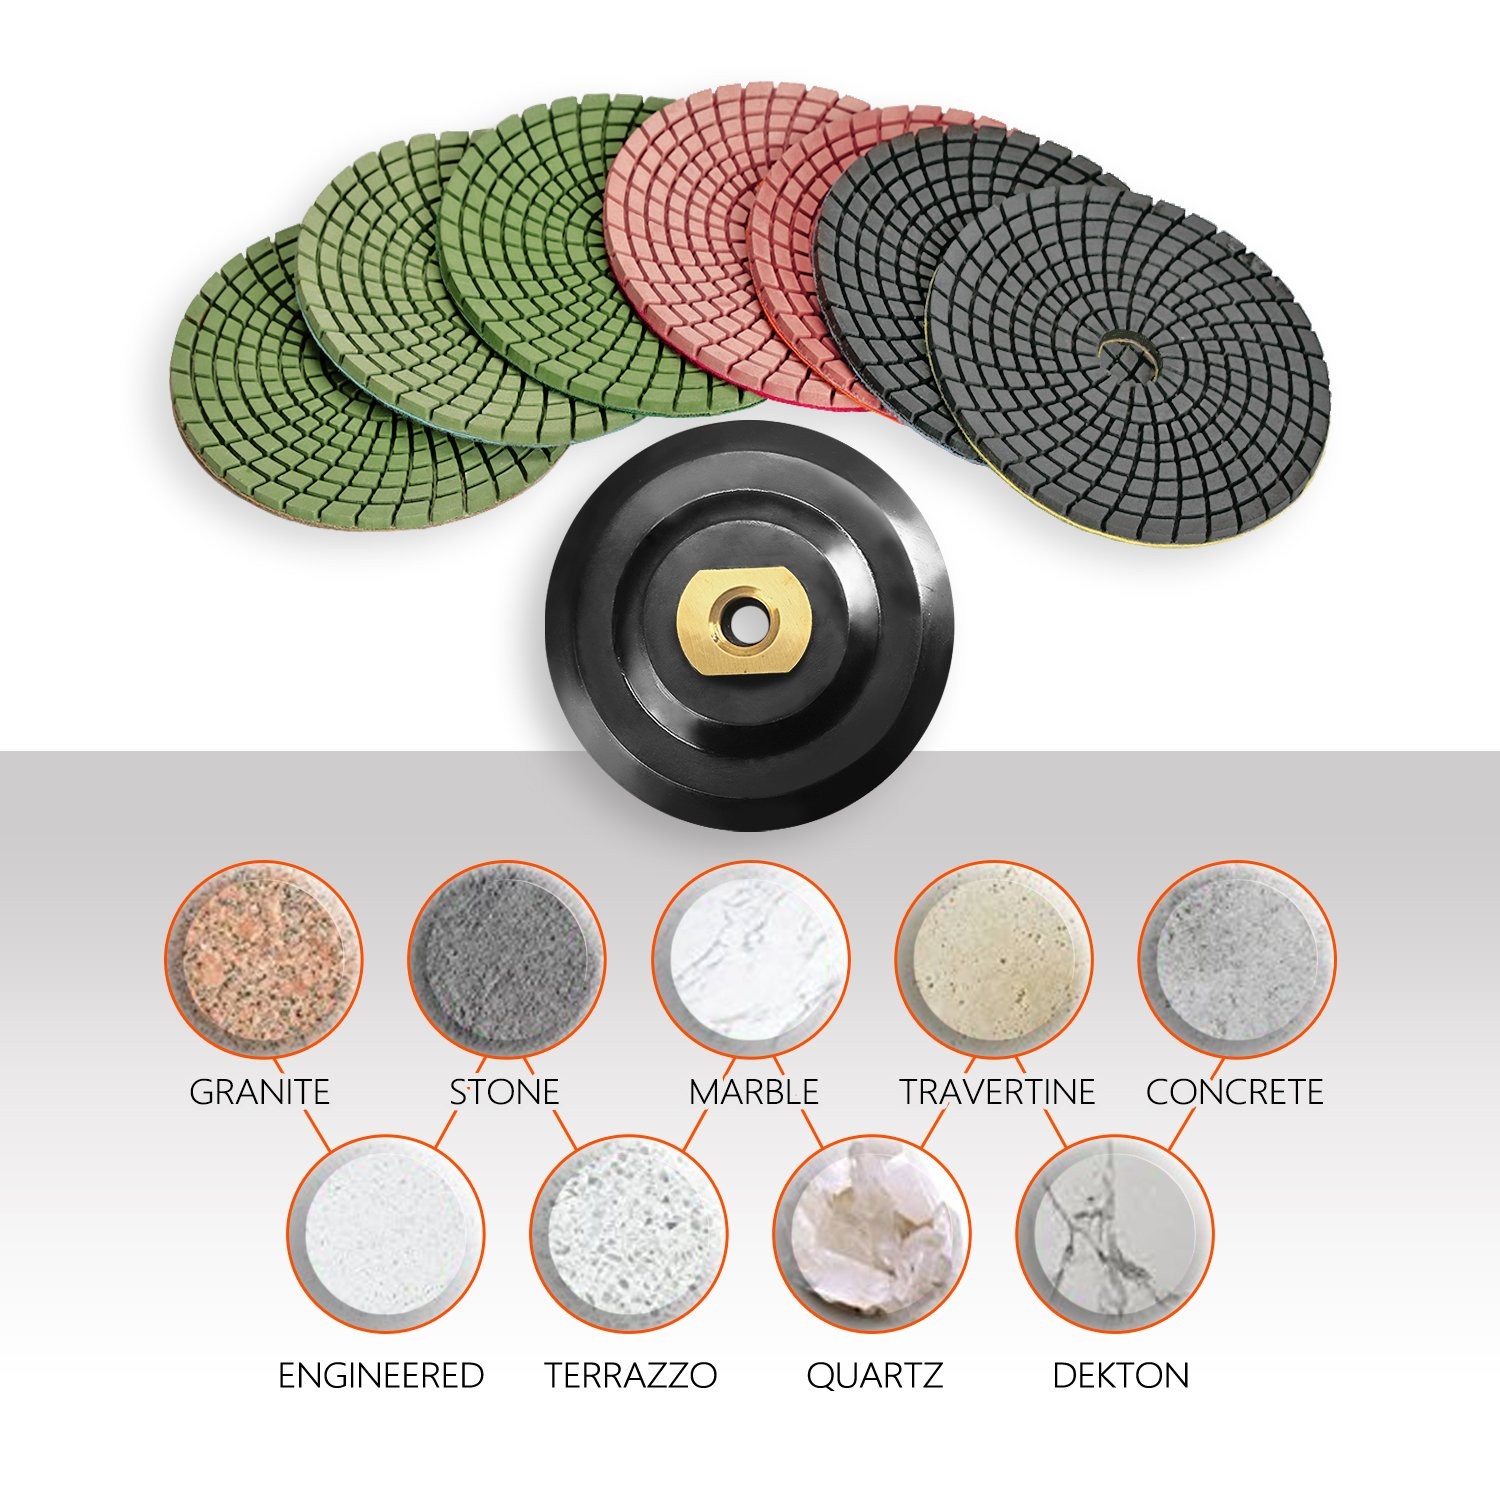 SPTA 8pcs Diamond Wet Polishing Pads Set For Granite Stone Concrete Marble Floor Grinder or Polisher, 50#-3000# with Hook & Loop Backing Holder Disc (4 inch) by SPTA (Image #5)